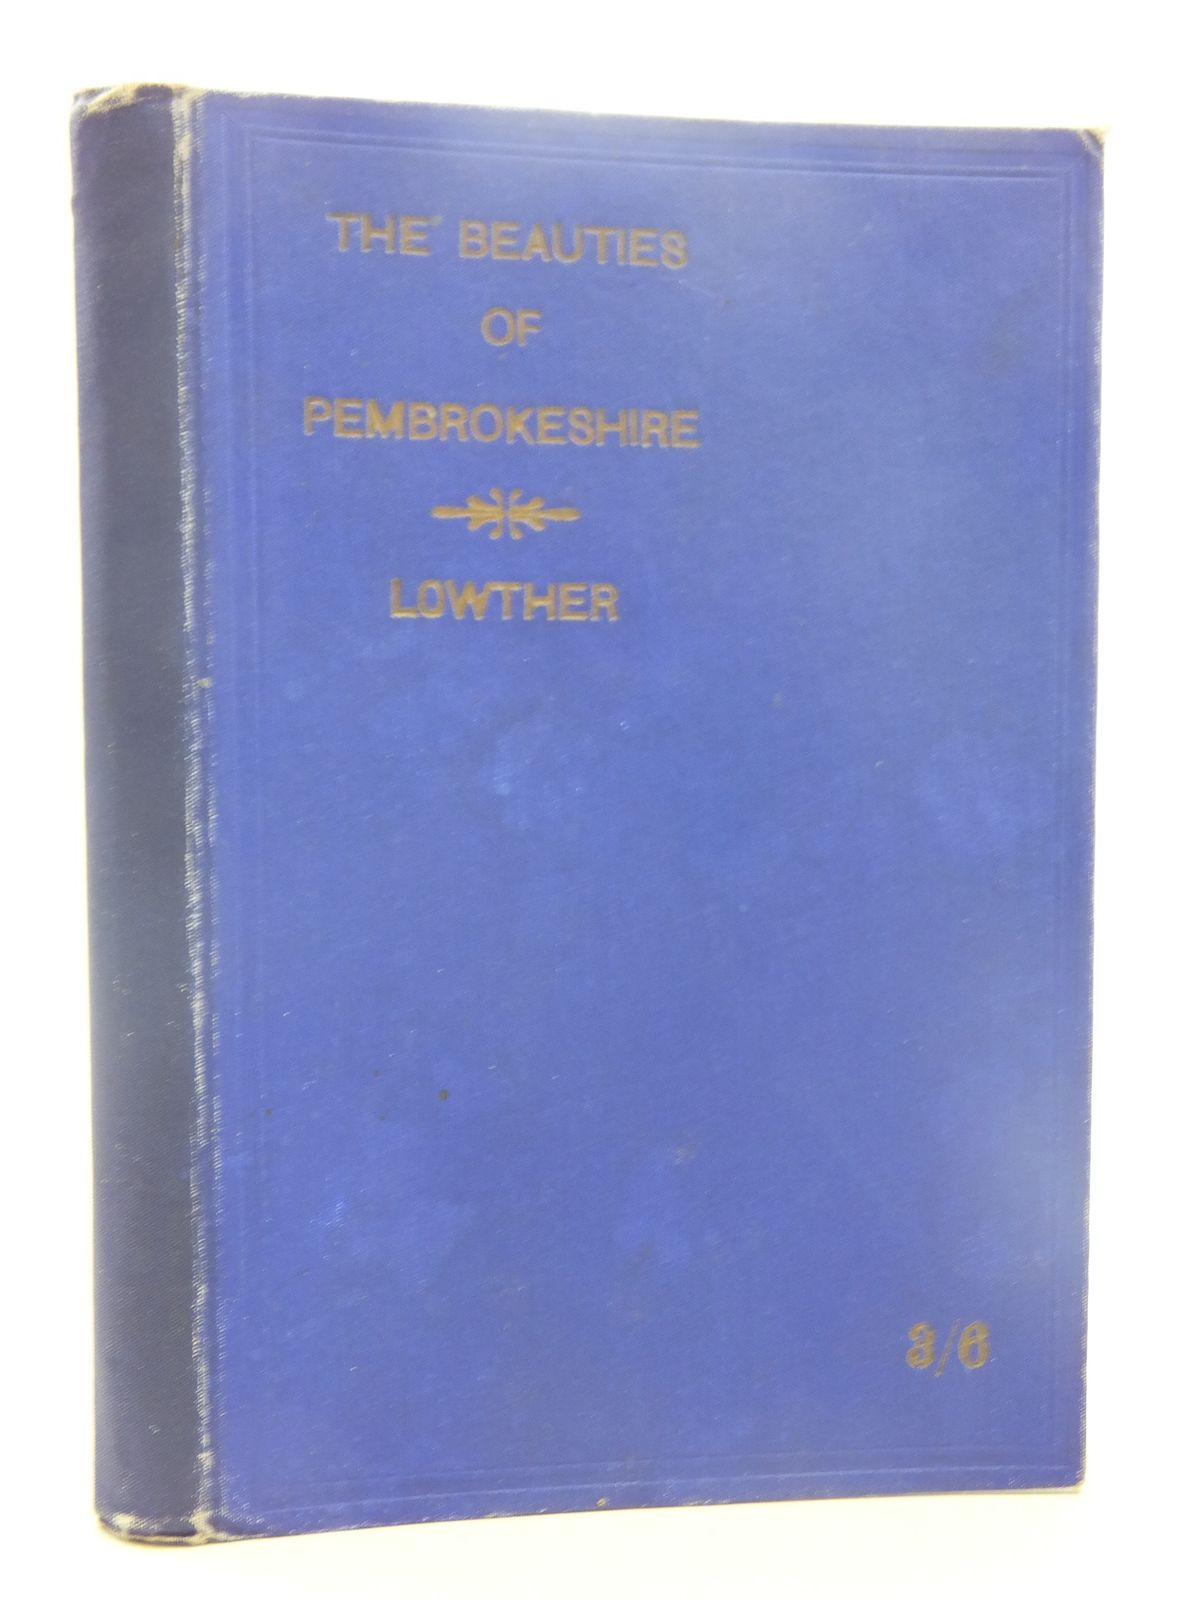 Photo of THE BEAUTIES OF PEMBROKESHIRE written by Lowther, F.L. published by The Welsh Outlook Press (STOCK CODE: 1607296)  for sale by Stella & Rose's Books